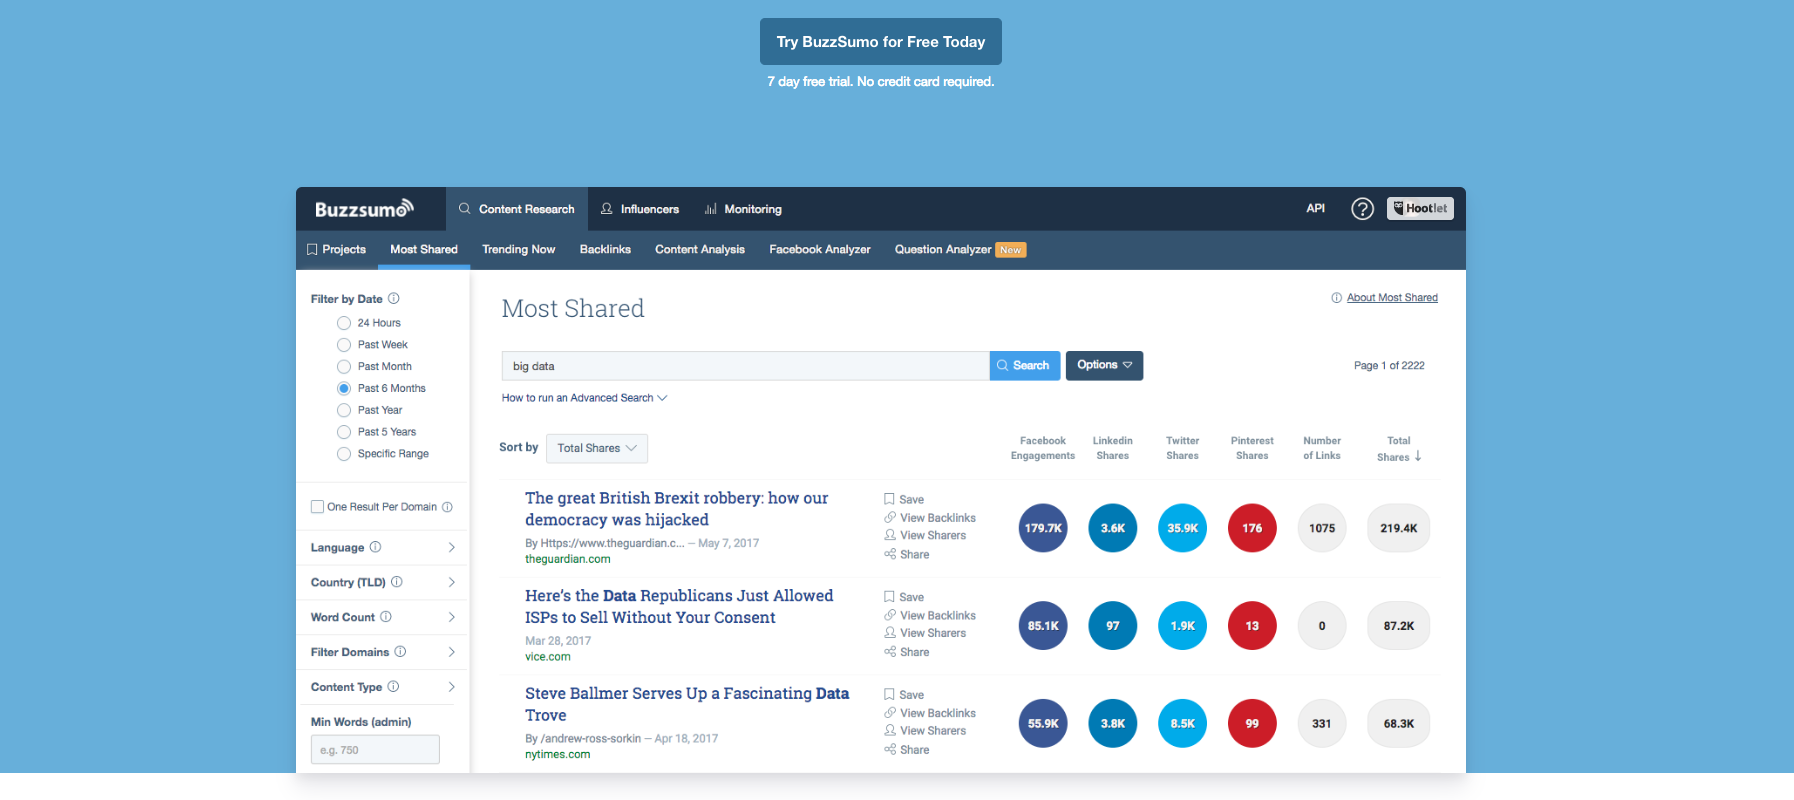 Image showing BuzzSumo's homepage, an essential e-commerce marketing tool specifically designed for content research.